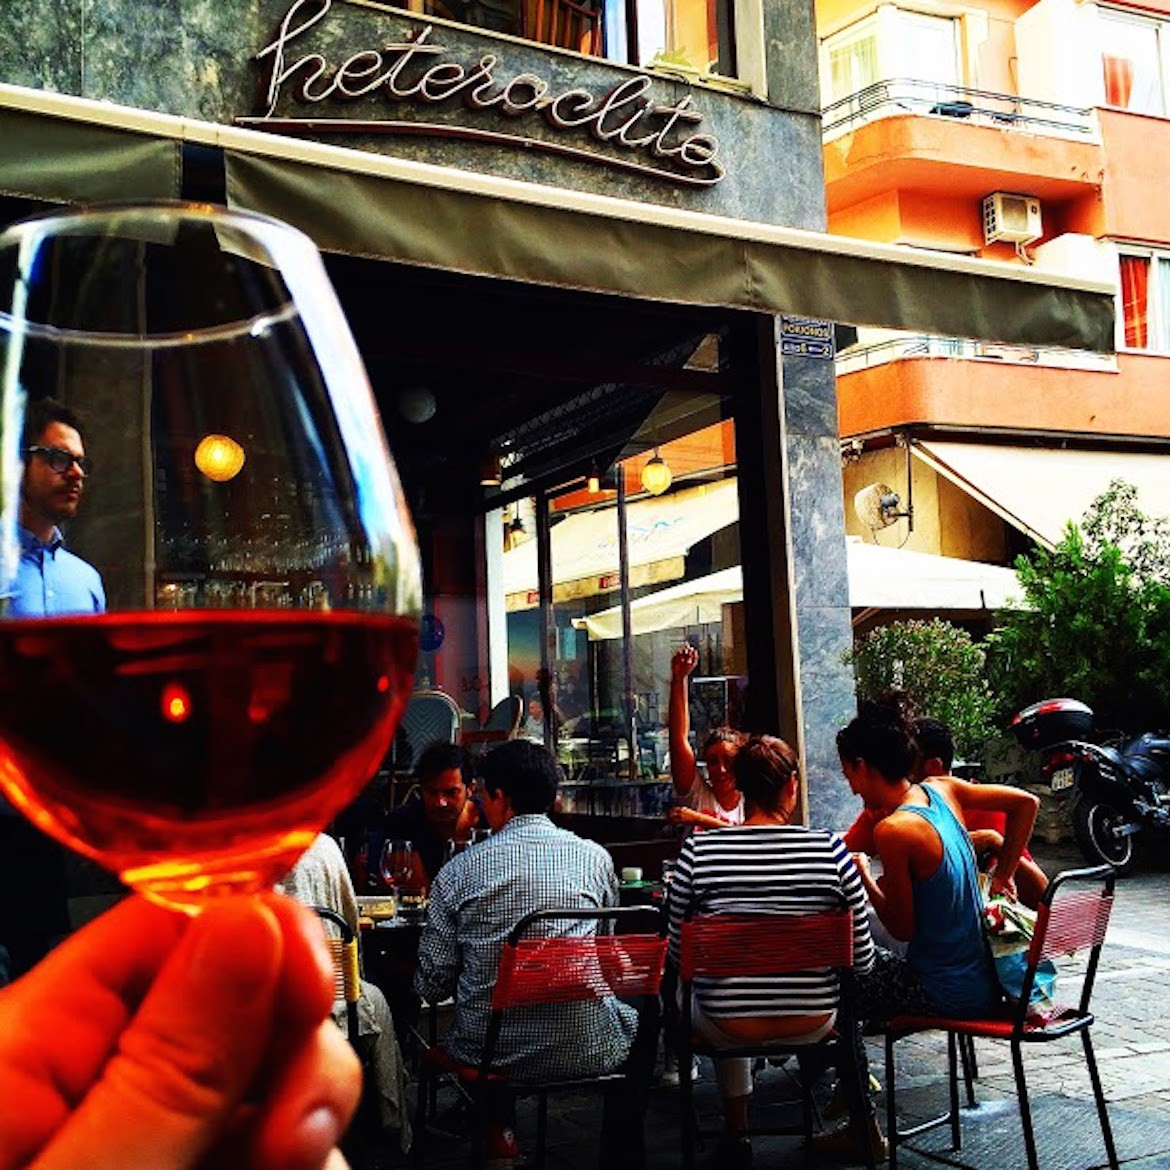 A glass of rose wine at Heteroclito, this sophisticated wine bar near Athens' cathedral.